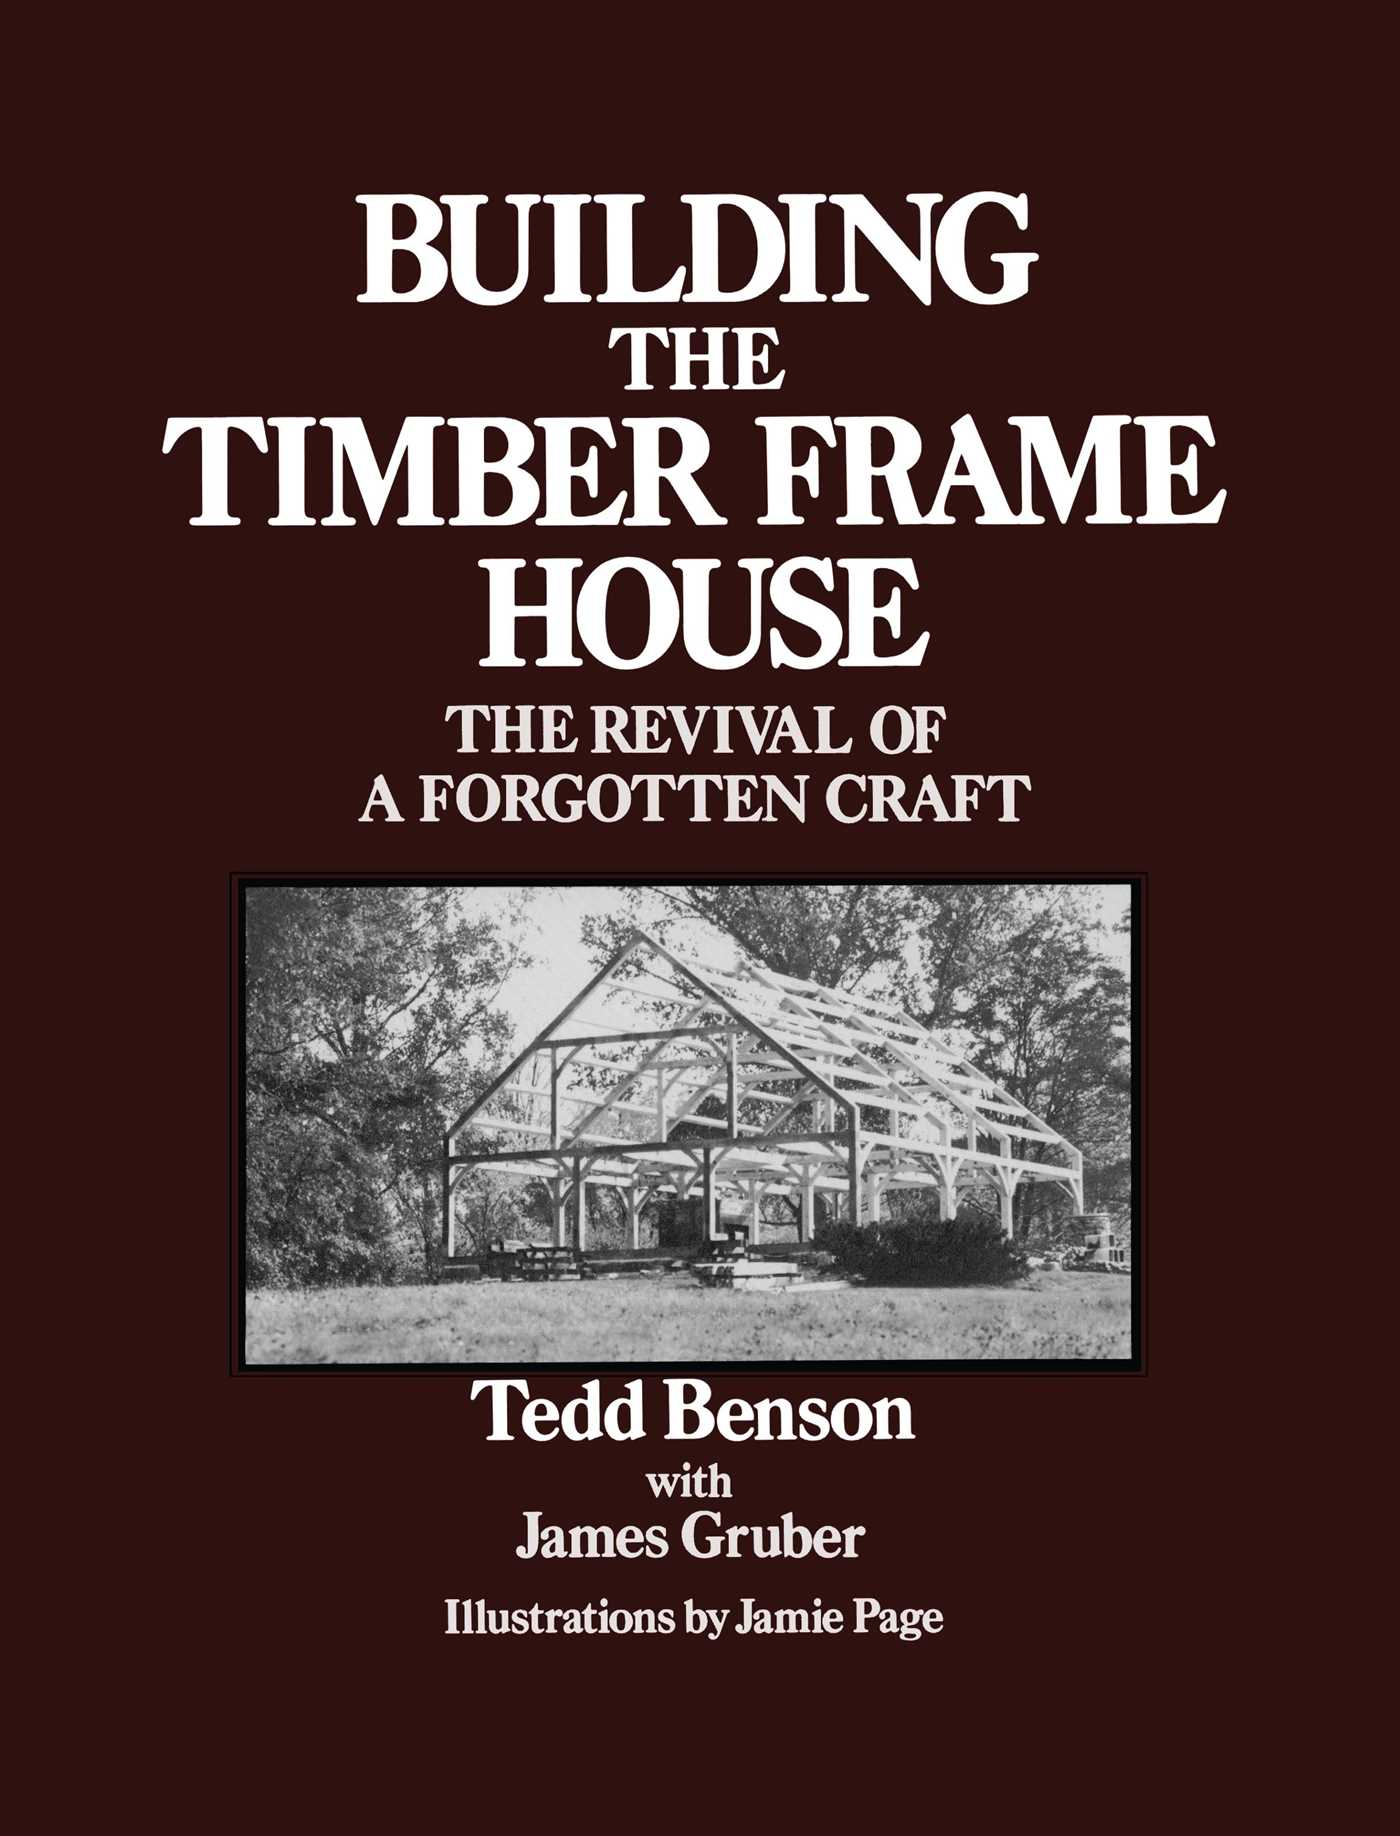 Building the timber frame house 9780684172866 hr